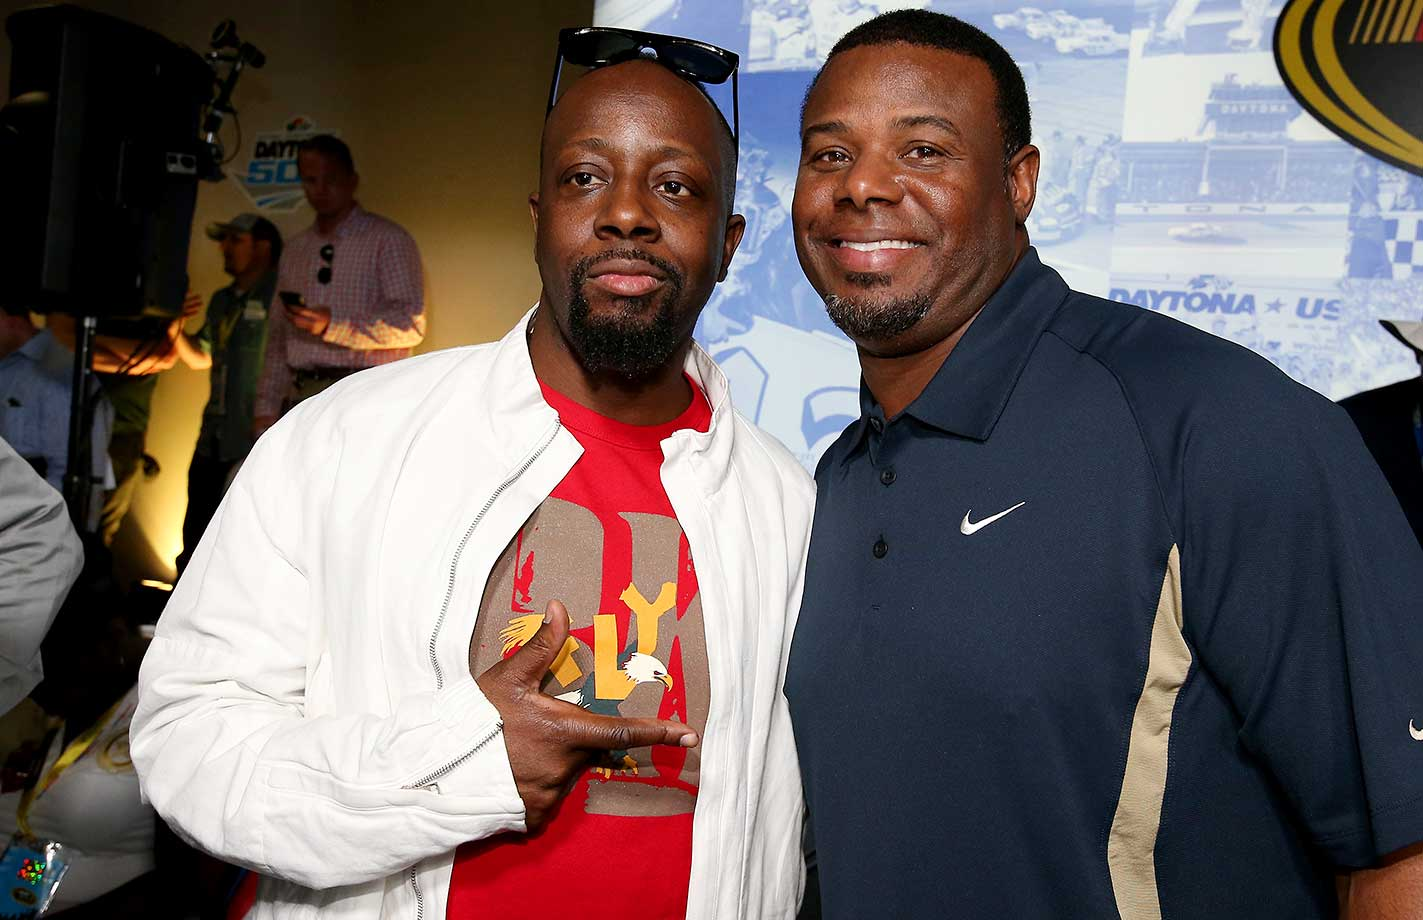 Wyclef Jean poses with Ken Griffey Jr. before Sunday's race.